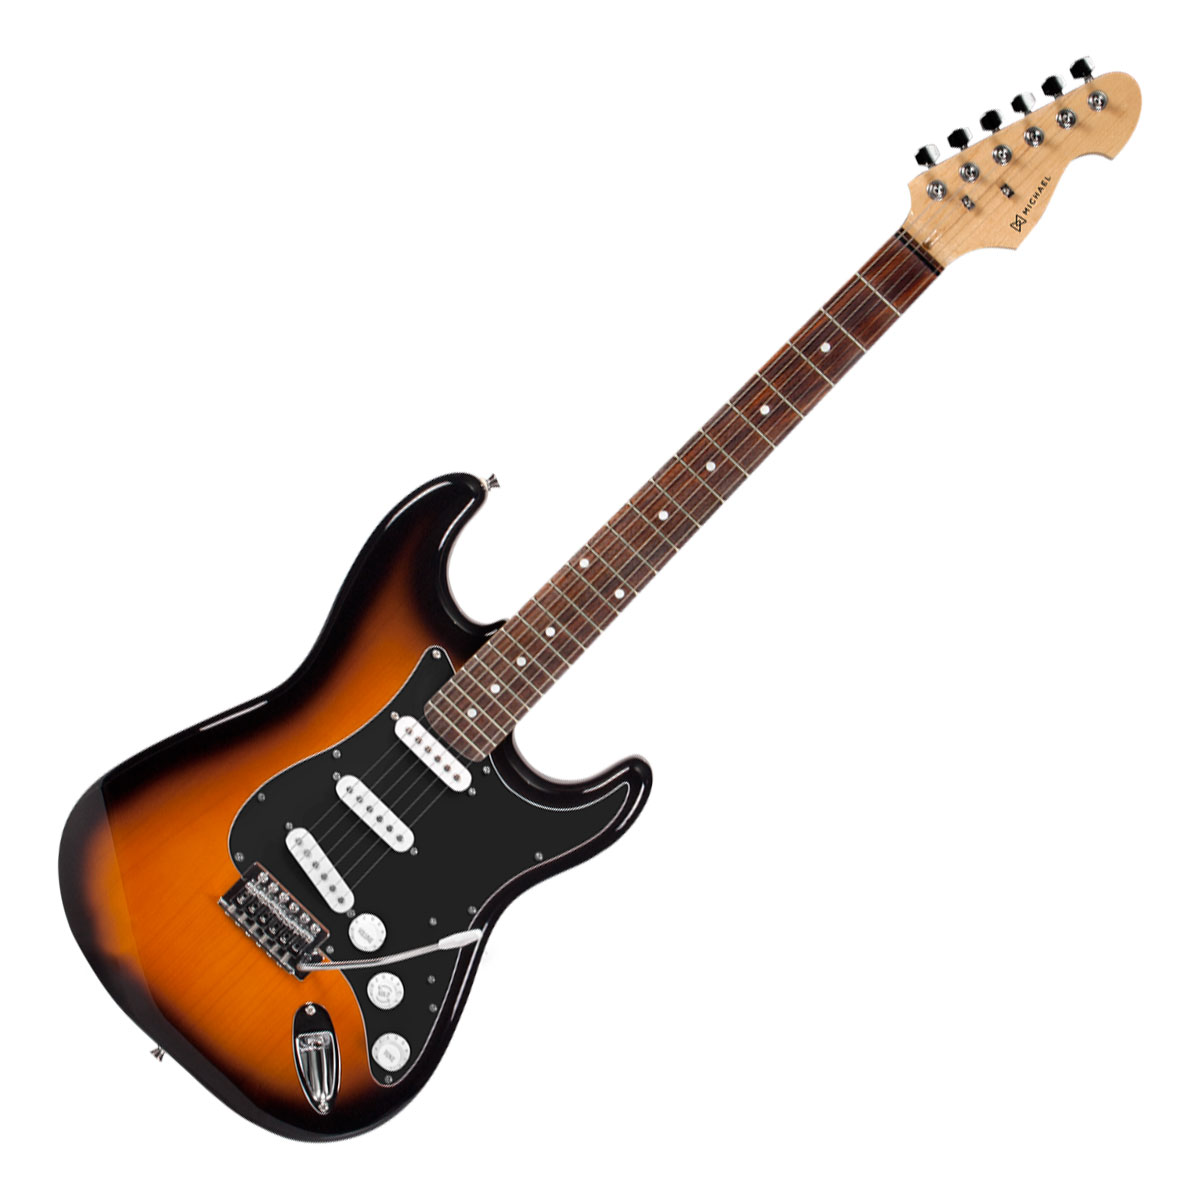 Guitarra Strato Advanced GM227 SK Black Sunburst  - Michael